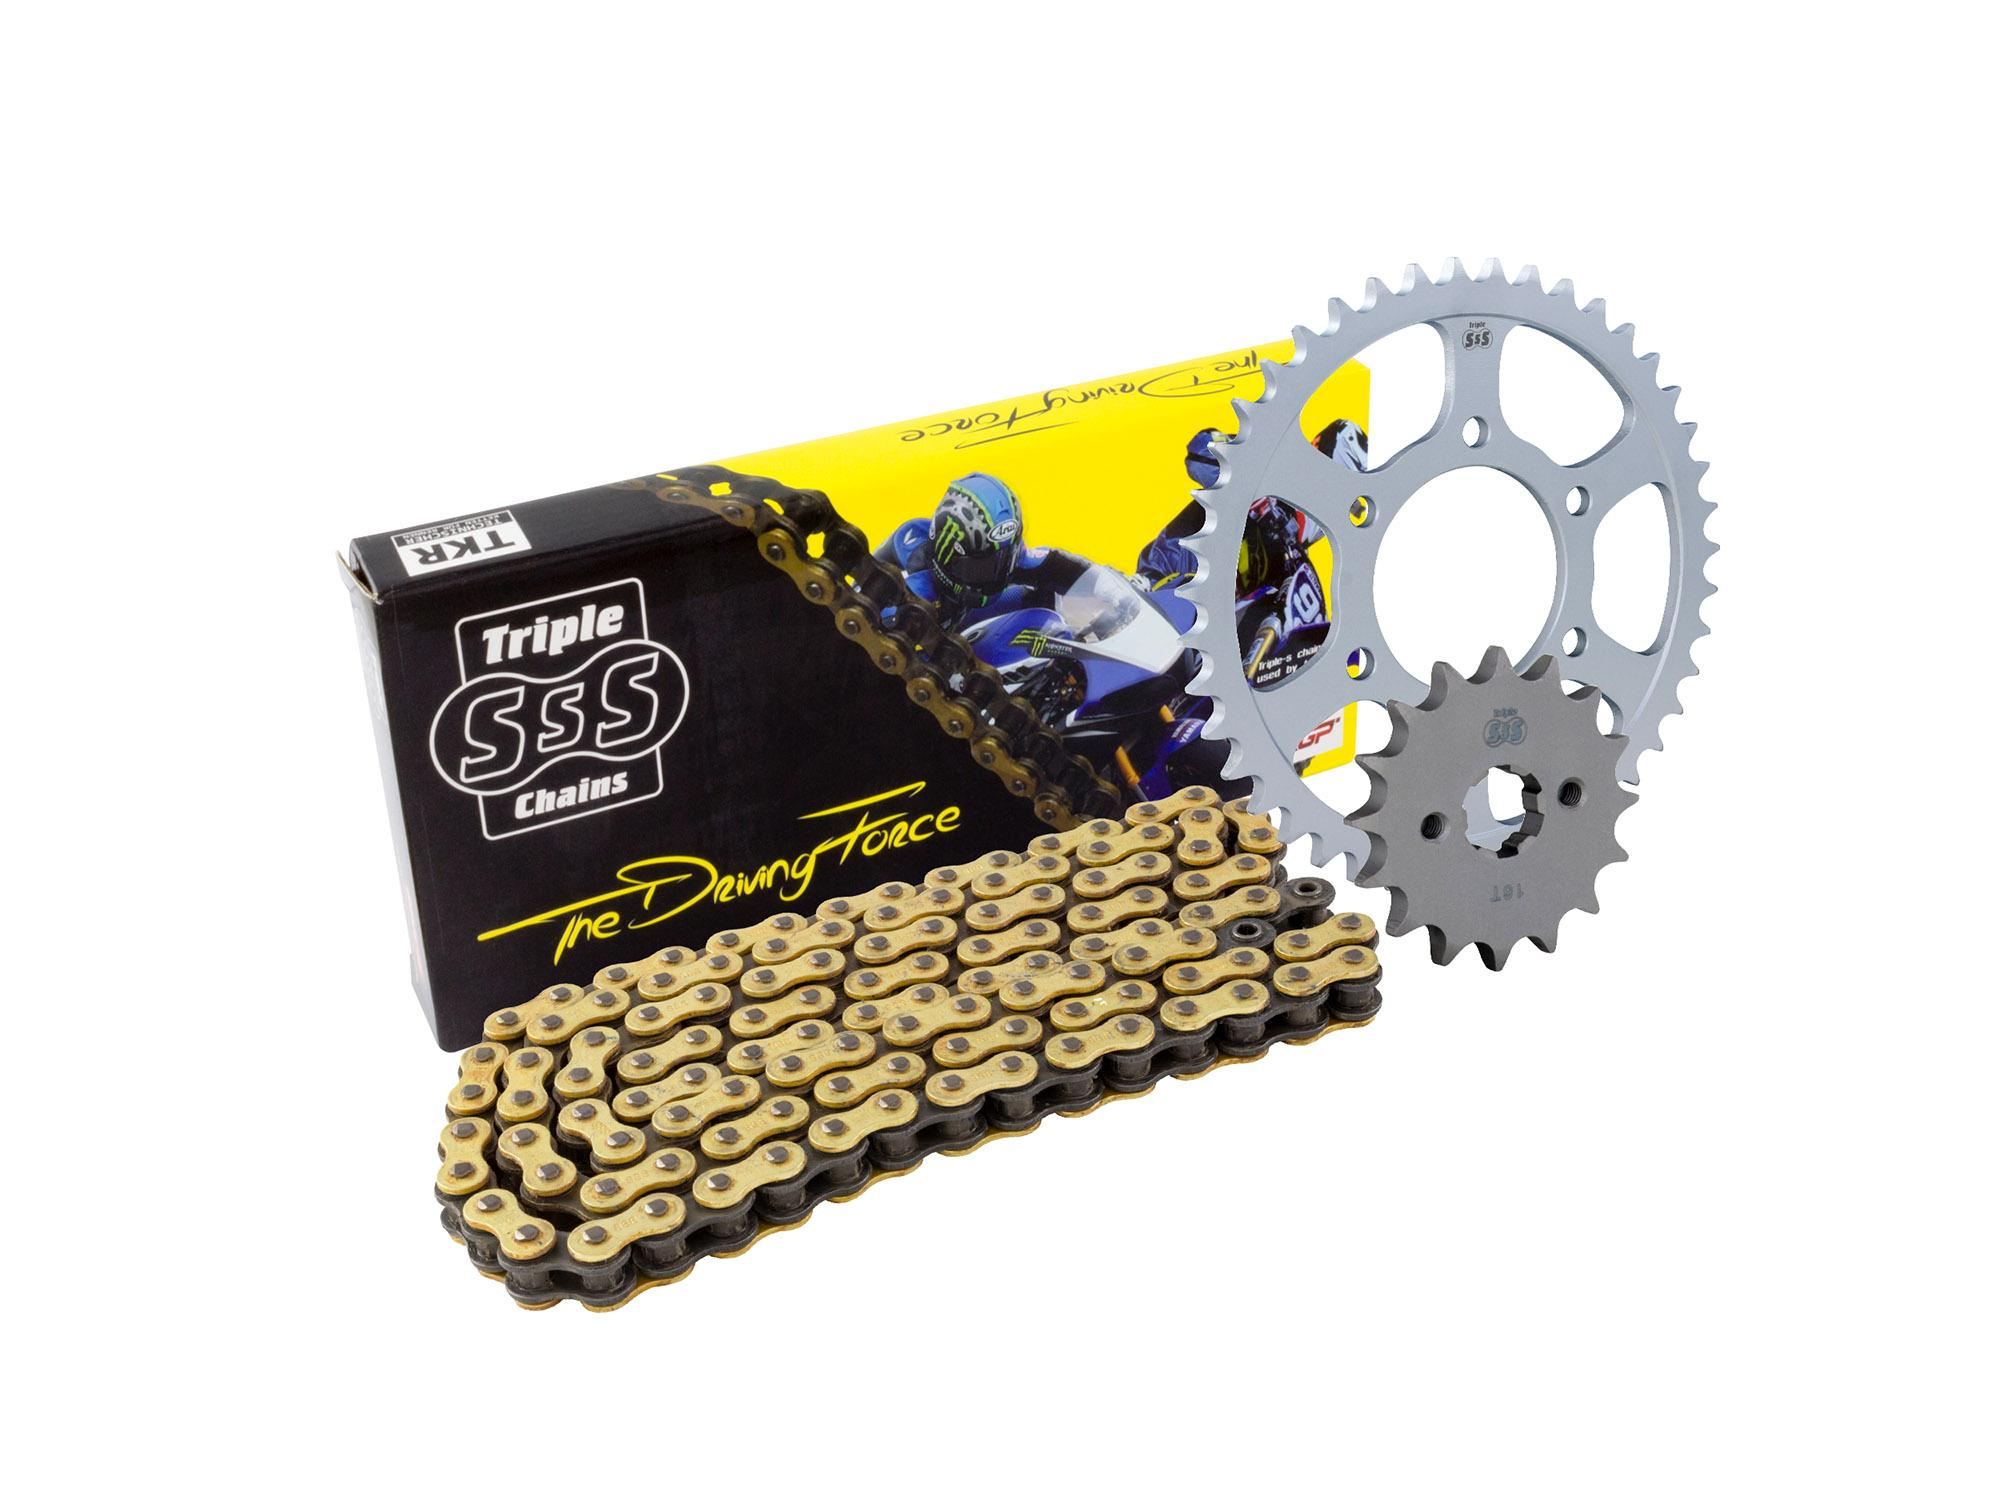 Honda CB1000 R/RA-8/9/A (ABS) 08-10 Chain & Sprocket Kit: 15T Front, 43T Rear, HD O-Ring Gold Chain 530H 106Link